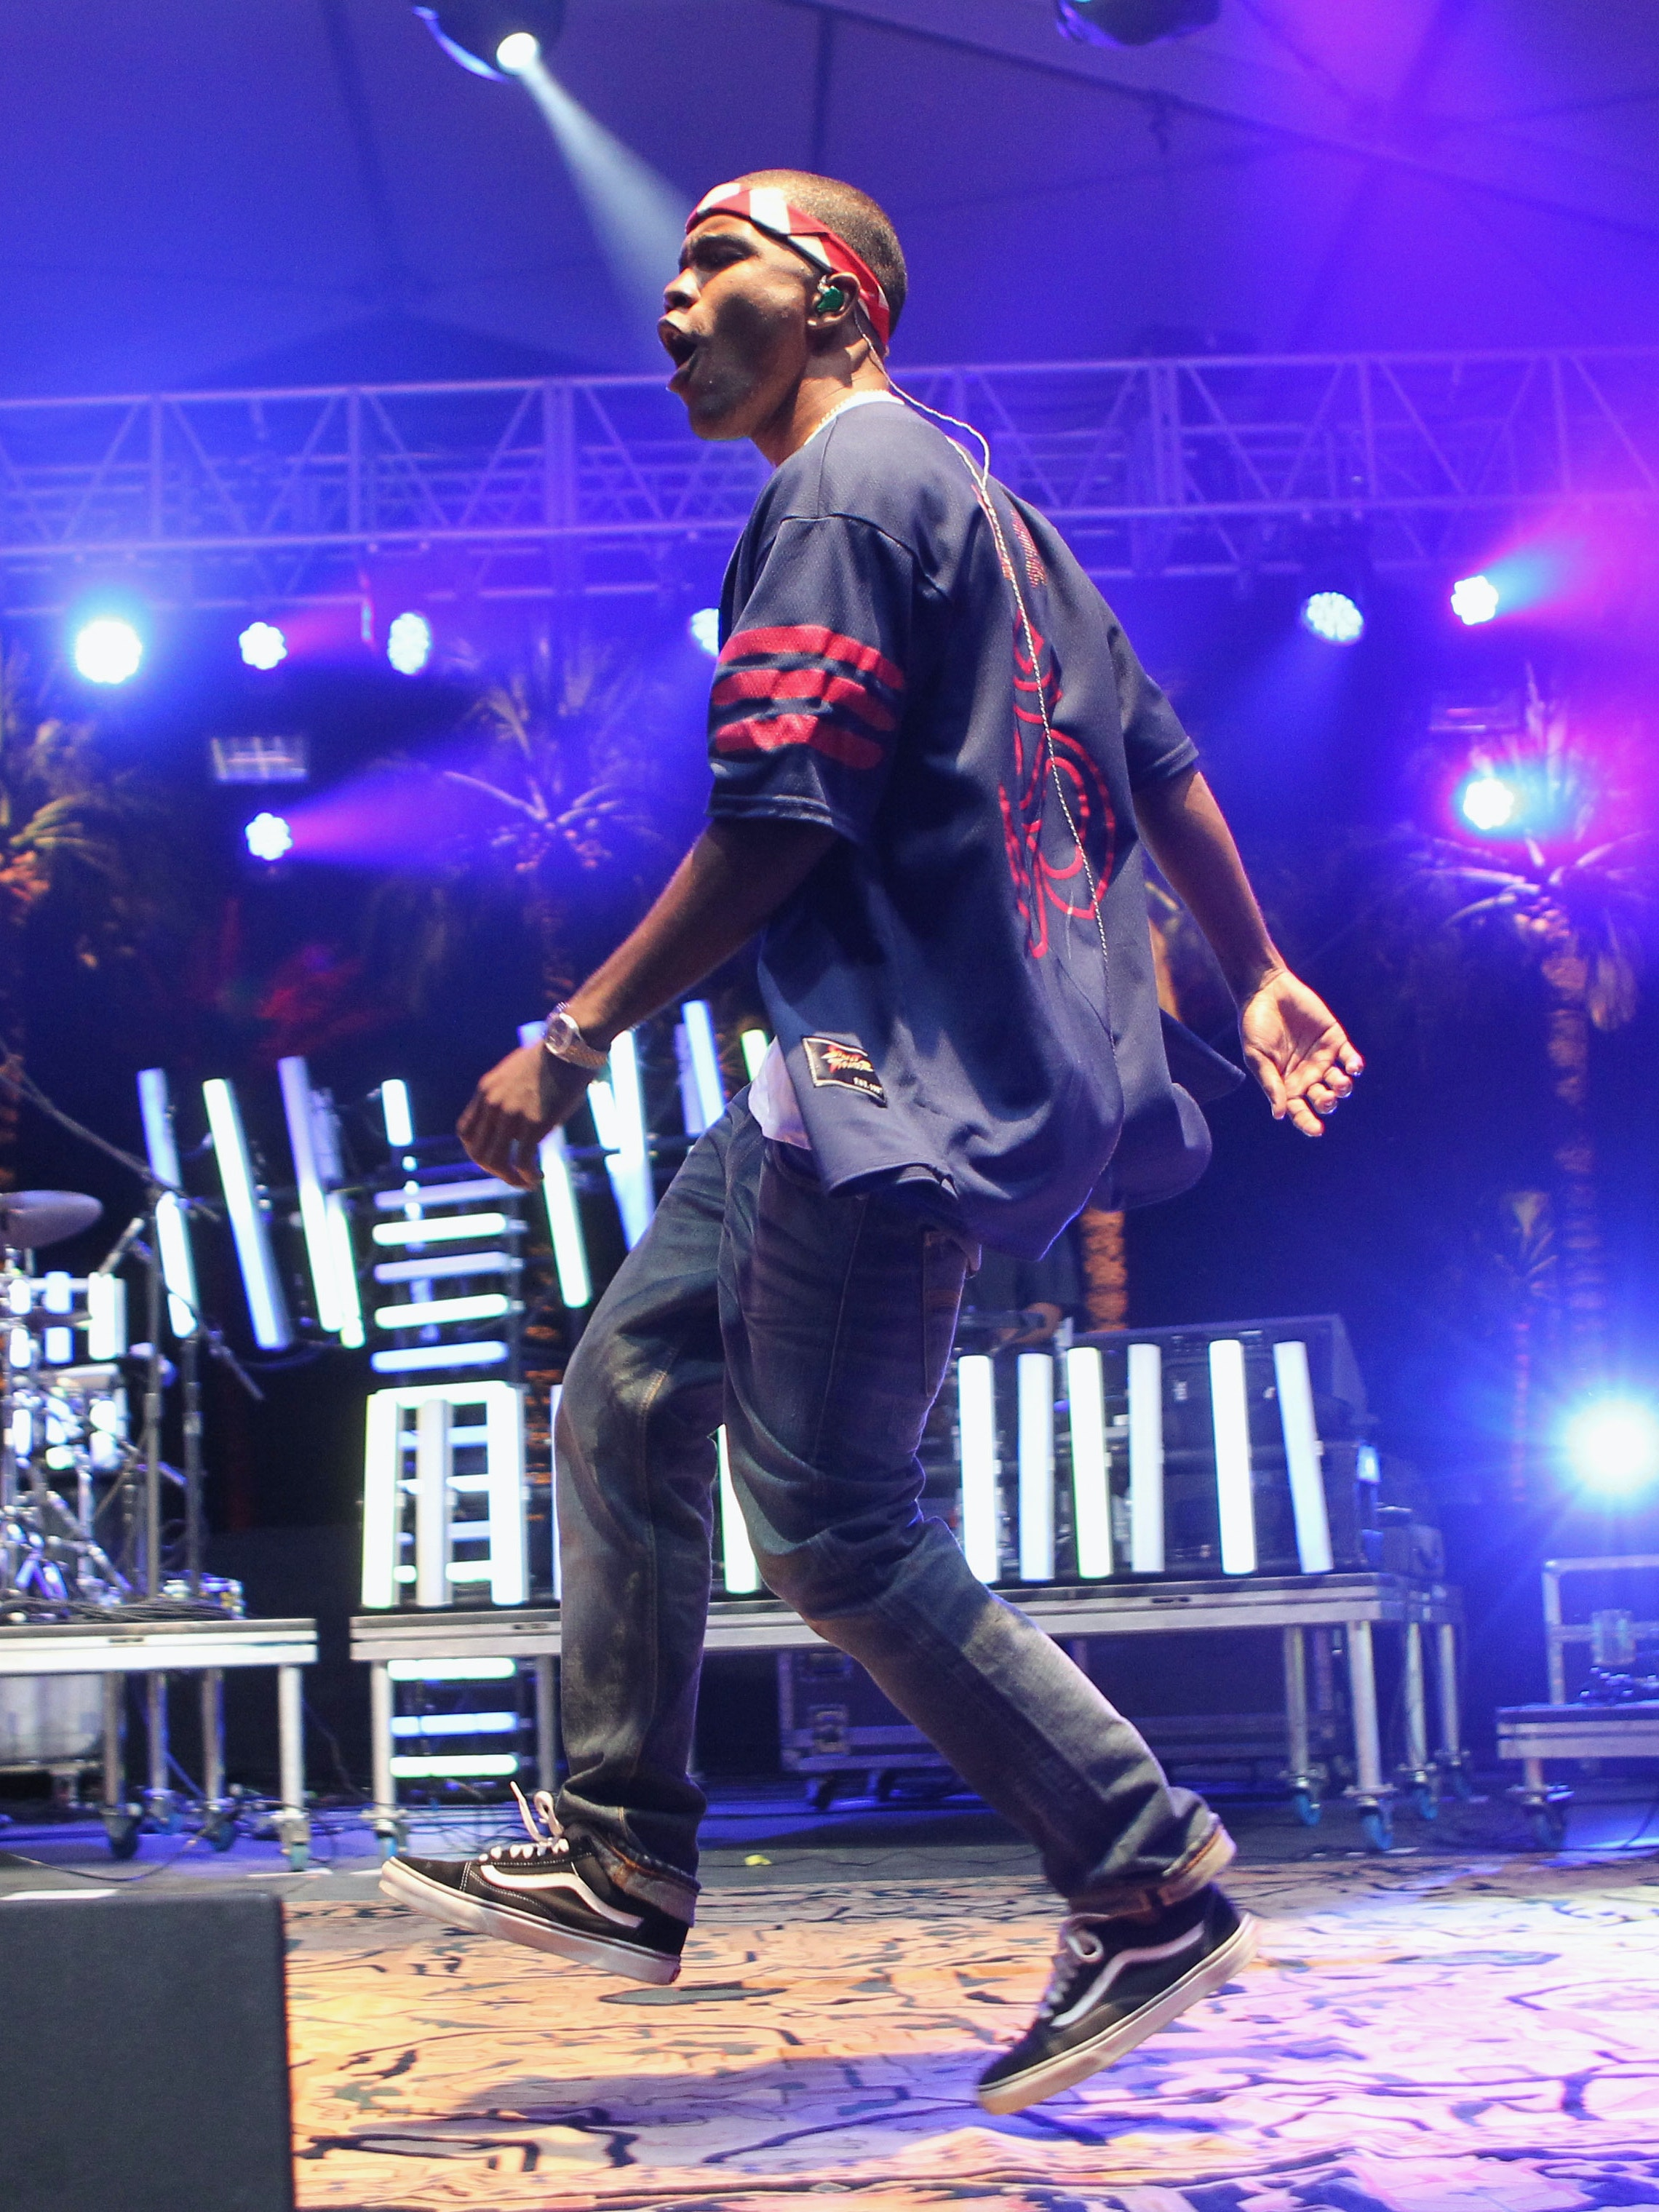 Singer Frank Ocean performs onstage at the 2012 Coachella Valley Music & Arts Festival held at The Empire Polo Field on April 13, 2012 in Indio, California.